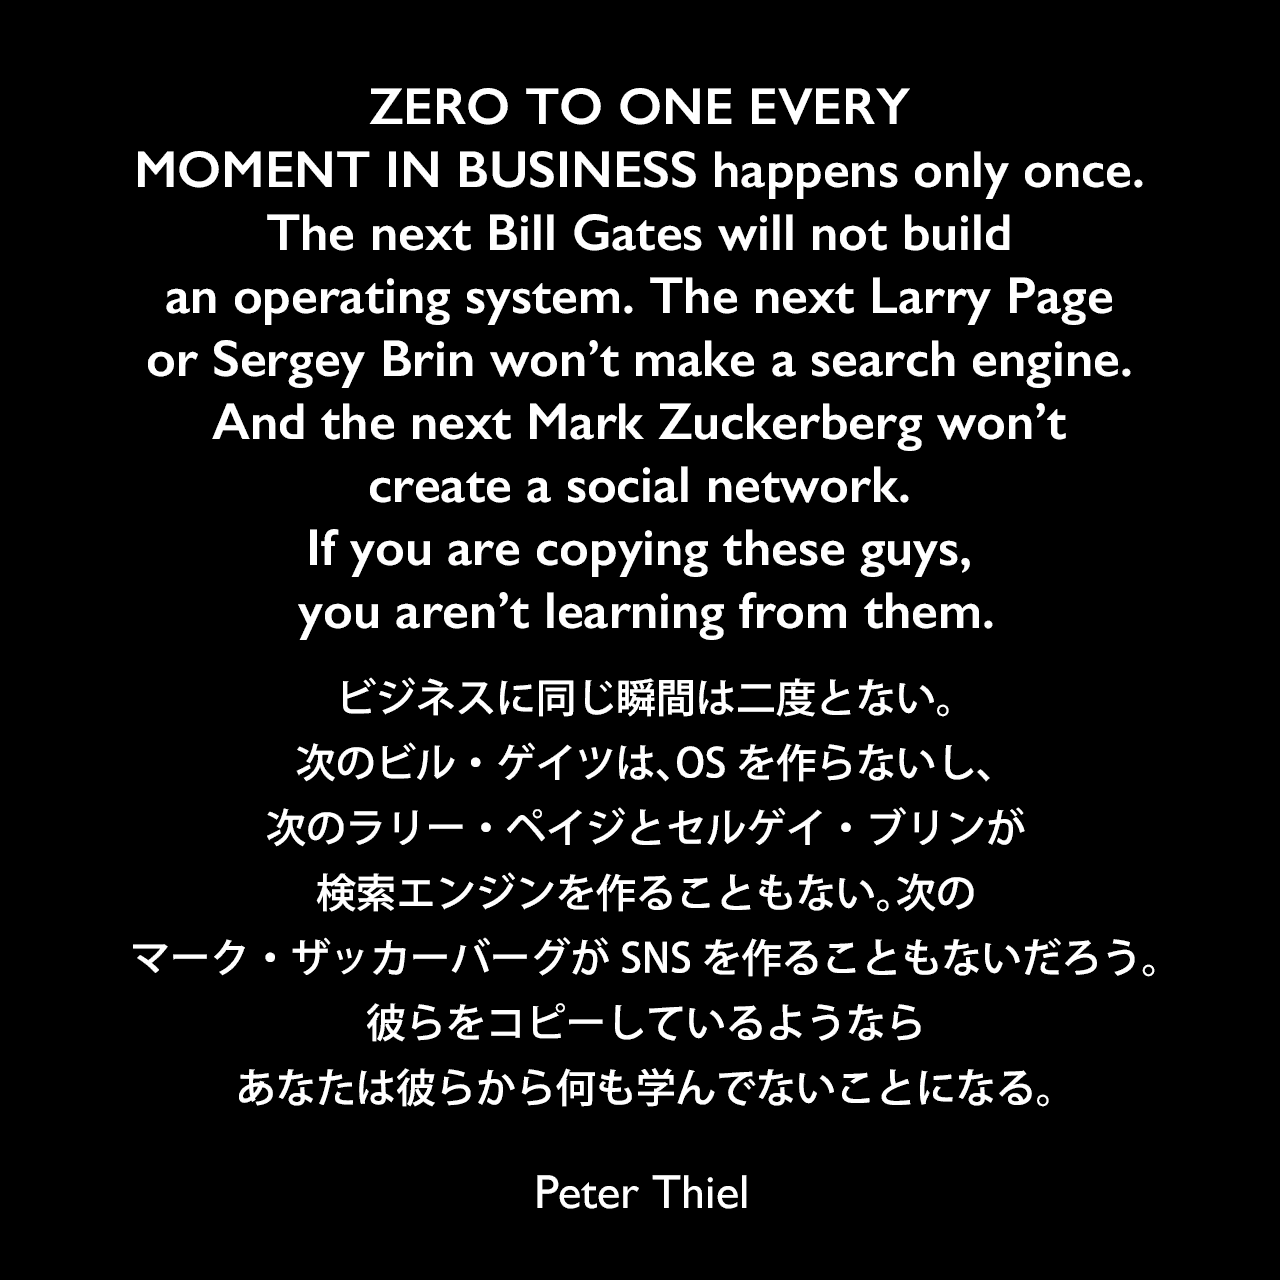 ZERO TO ONE EVERY MOMENT IN BUSINESS happens only once. The next Bill Gates will not build an operating system. The next Larry Page or Sergey Brin won't make a search engine. And the next Mark Zuckerberg won't create a social network. If you are copying these guys, you aren't learning from them.ビジネスに同じ瞬間は二度とない。次のビル・ゲイツは、OSを作らないし、次のラリー・ペイジとセルゲイ・ブリンが検索エンジンを作ることもない。次のマーク・ザッカーバーグがソーシャル・ネットワークを作ることもないだろう。彼らをコピーしているようなら、あなたは彼らから何も学んでないことになる。- ピーター・ティールの本「Zero to One」よりPeter Thiel